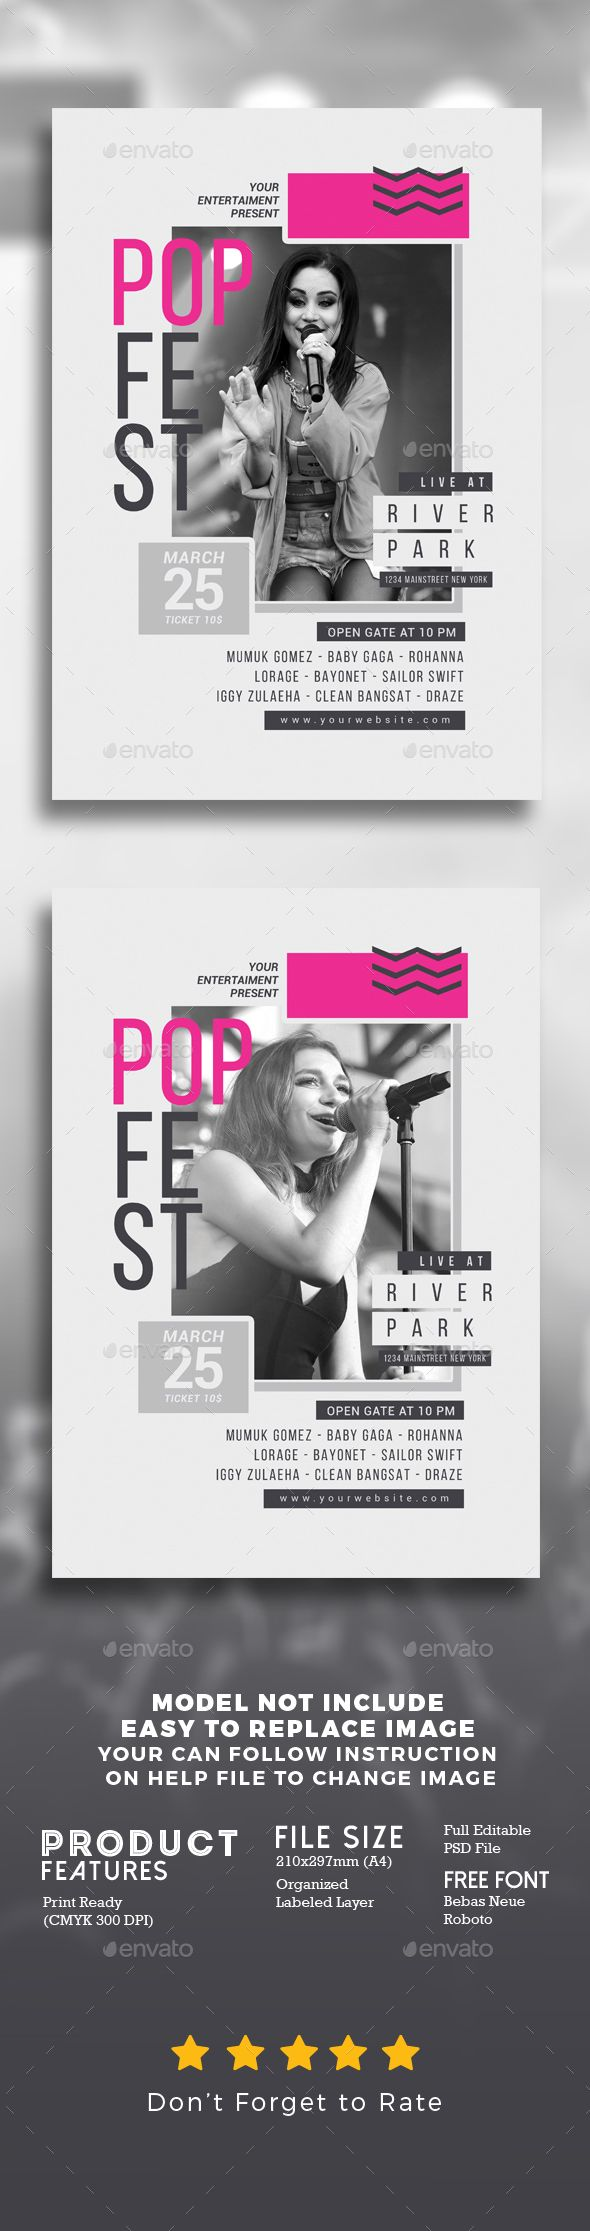 Pop Music Festival Flyer Template PSD